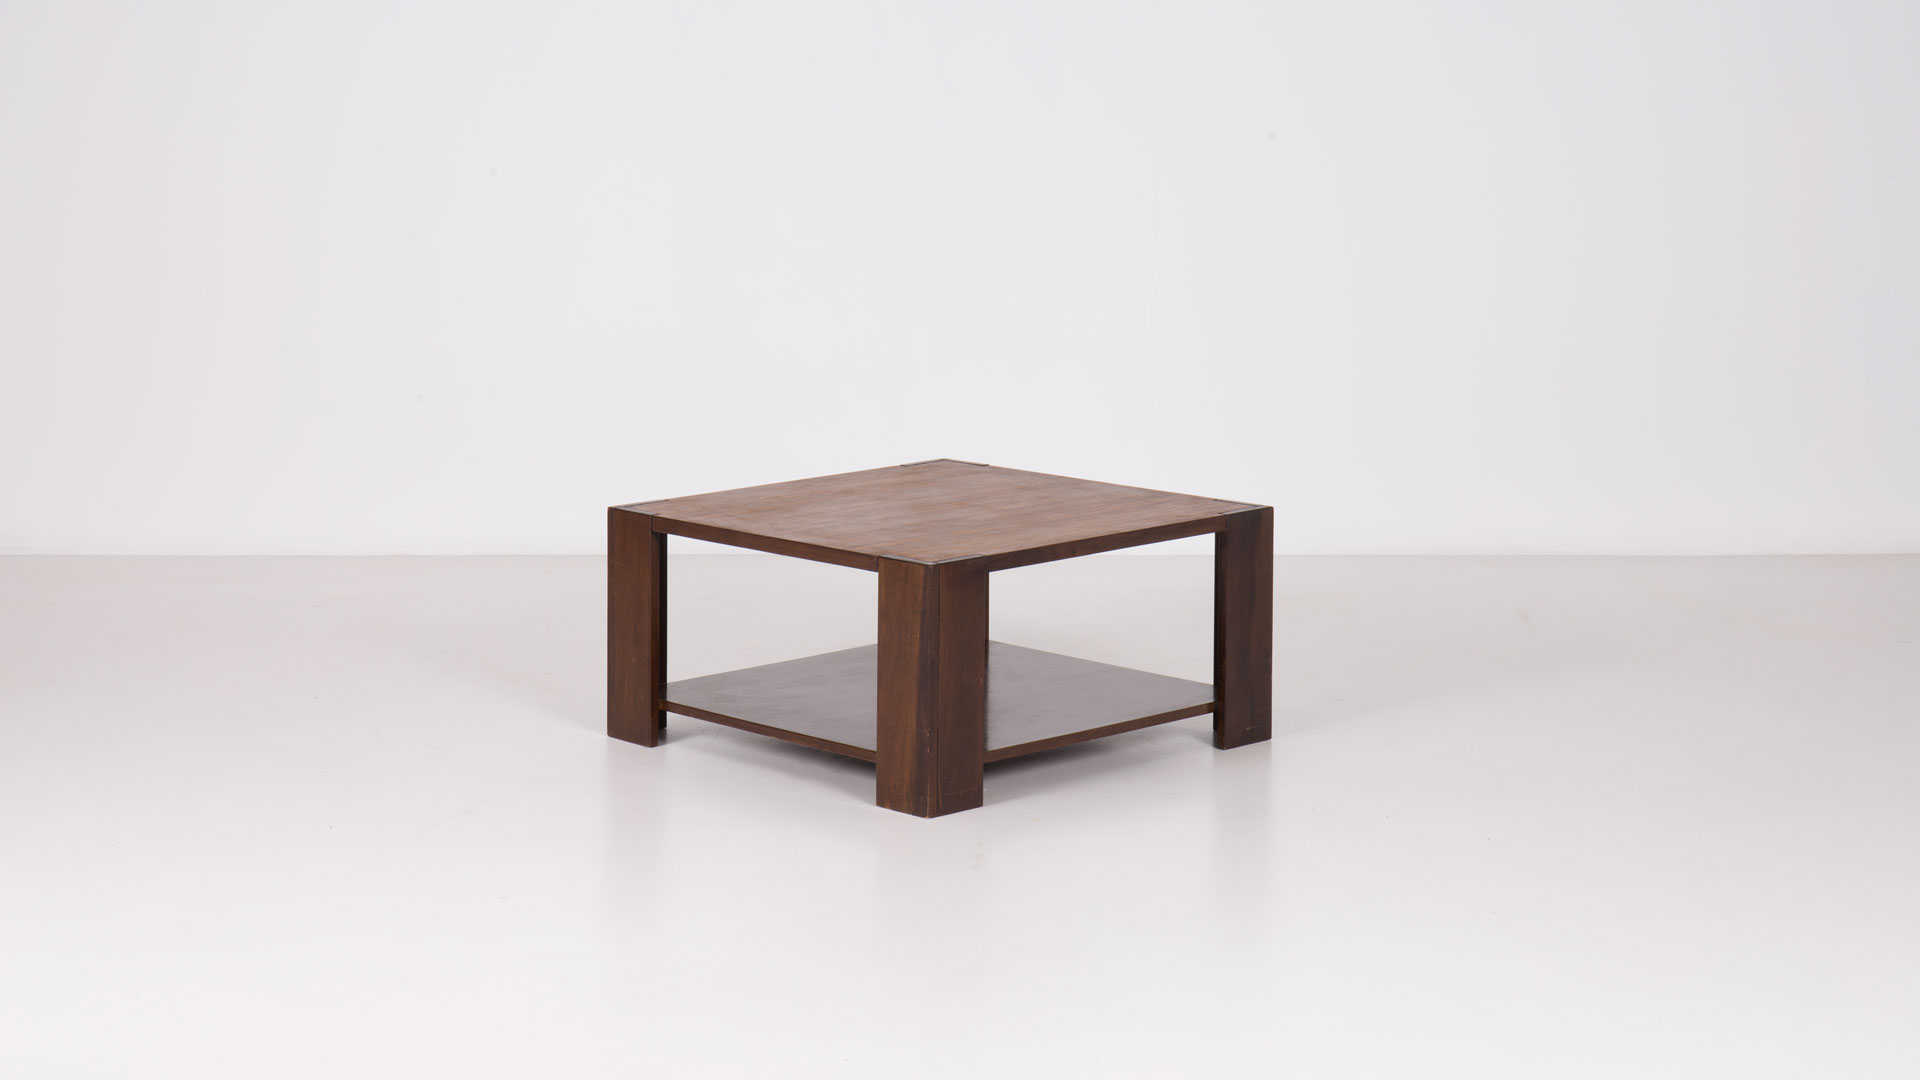 Bastiano low table by Tobia Scarpa | Paradisoterrestre